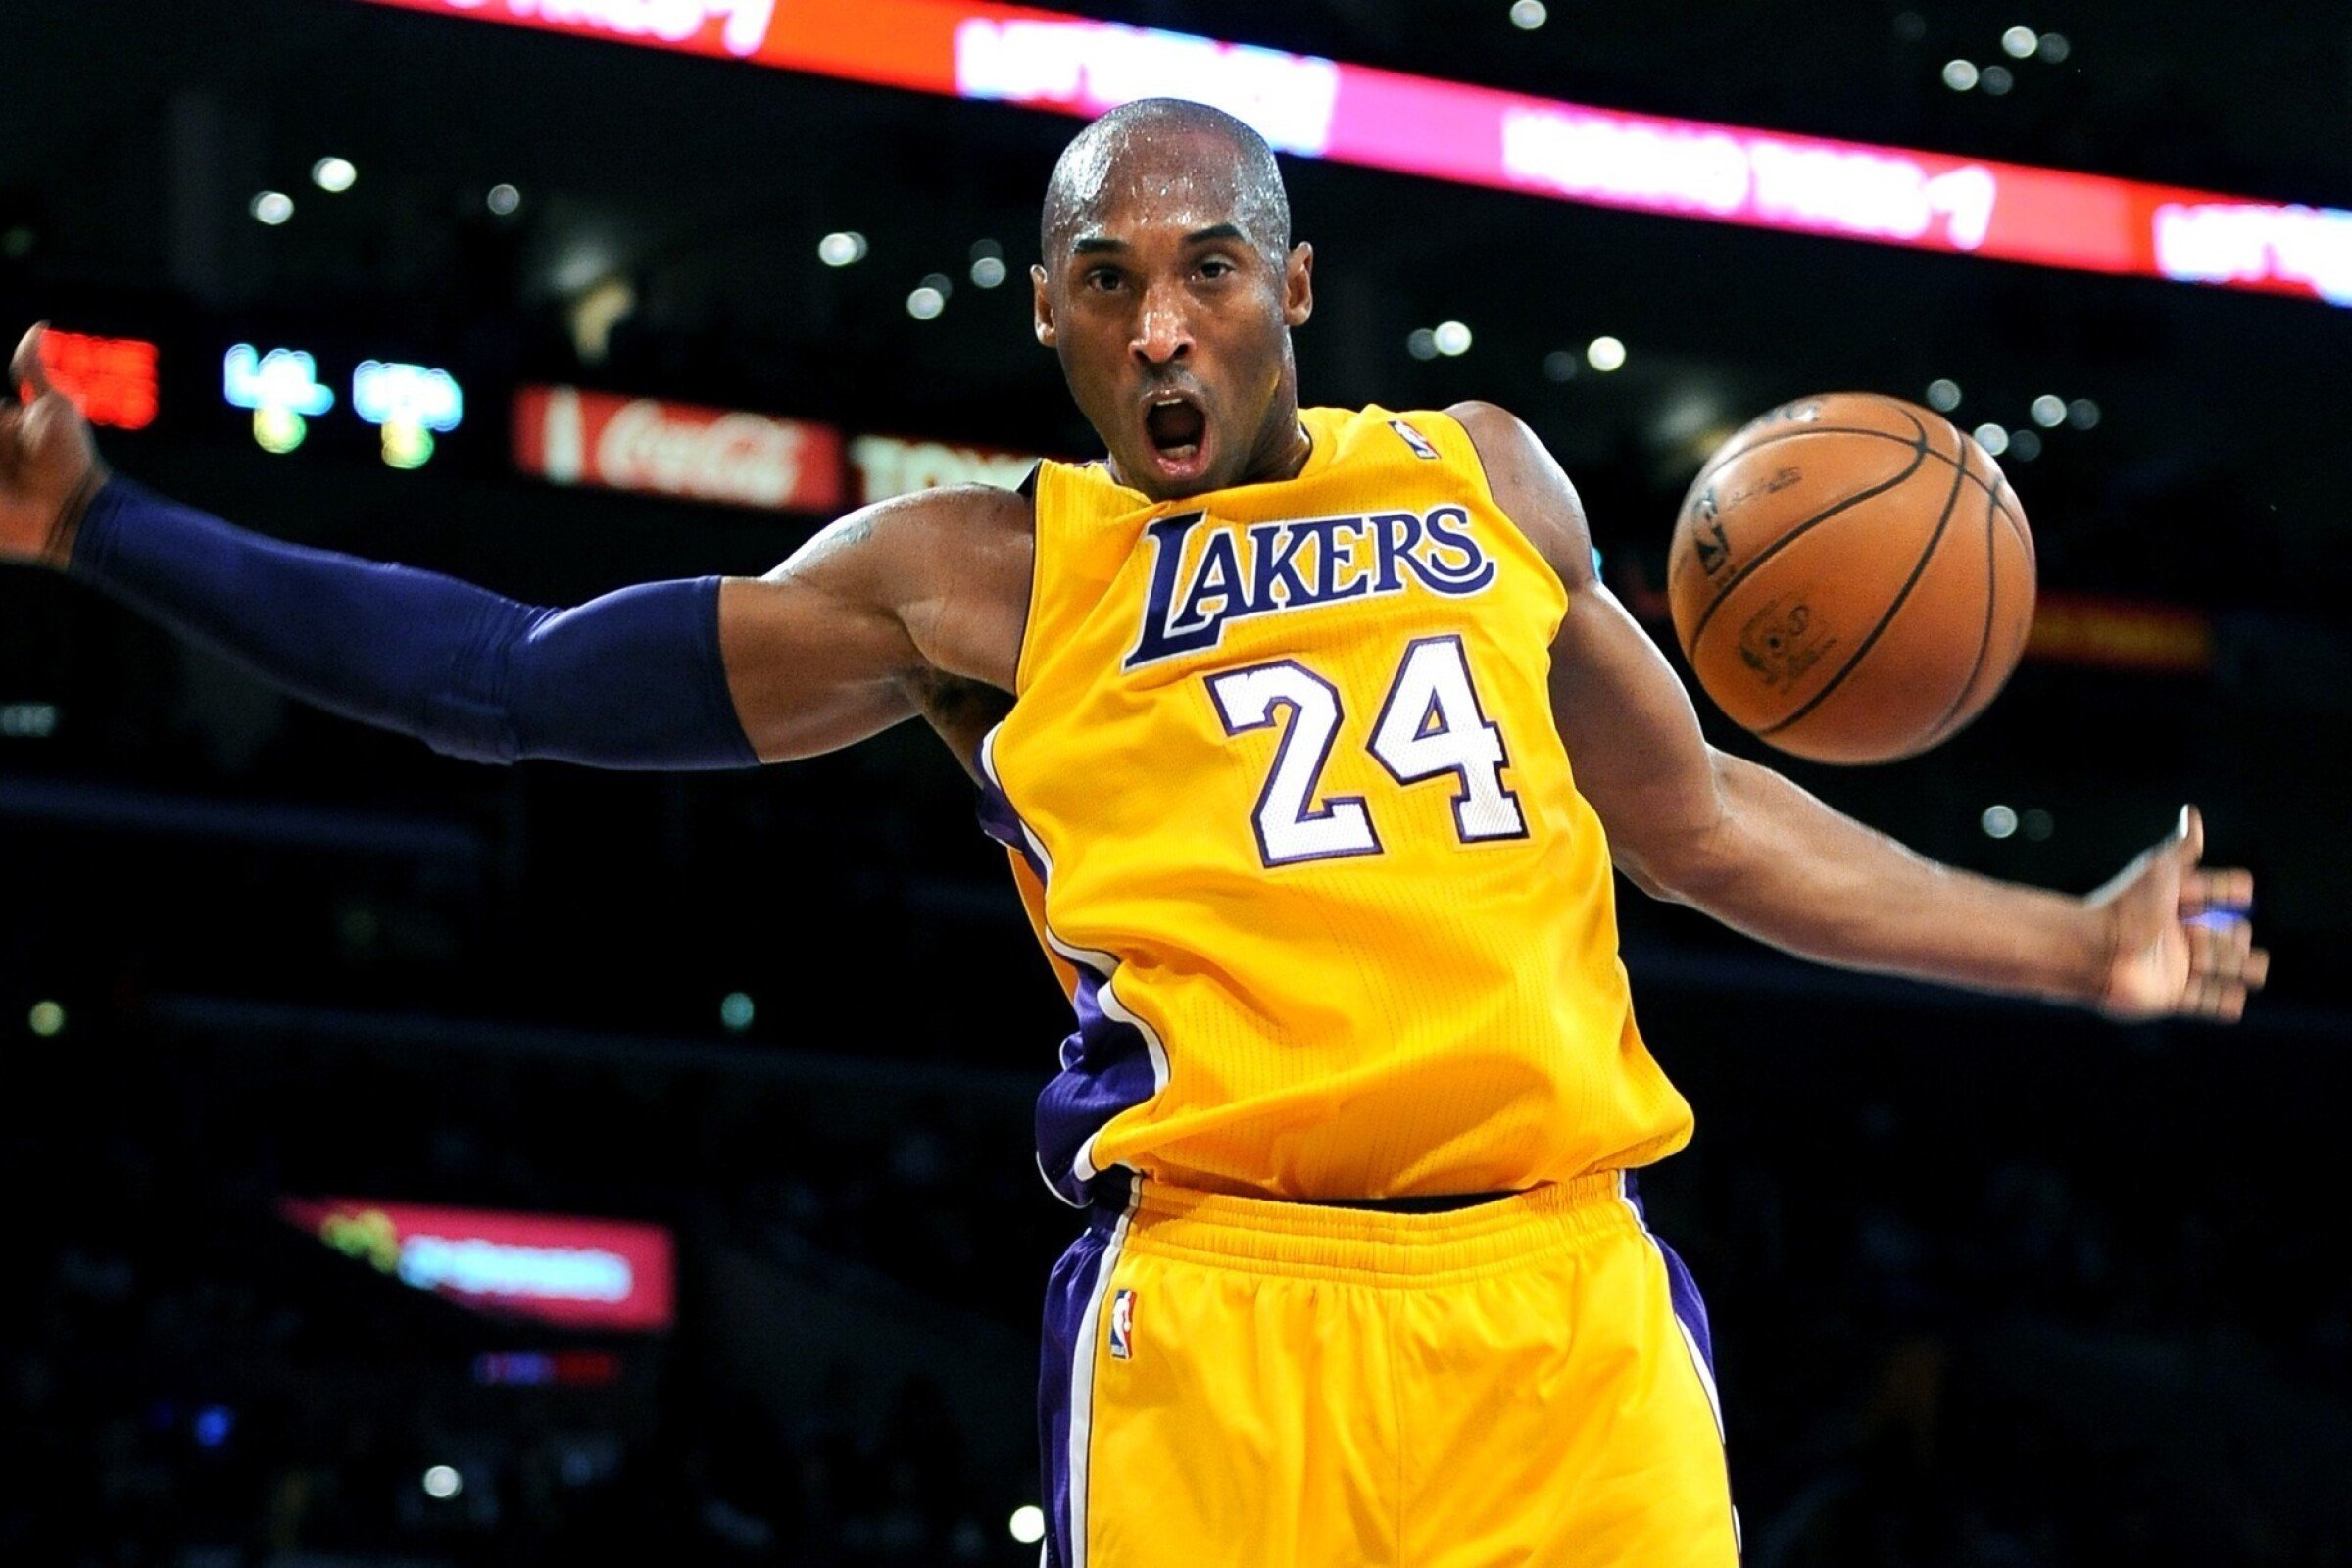 Kobe Bryant dunks during a game in 2012.